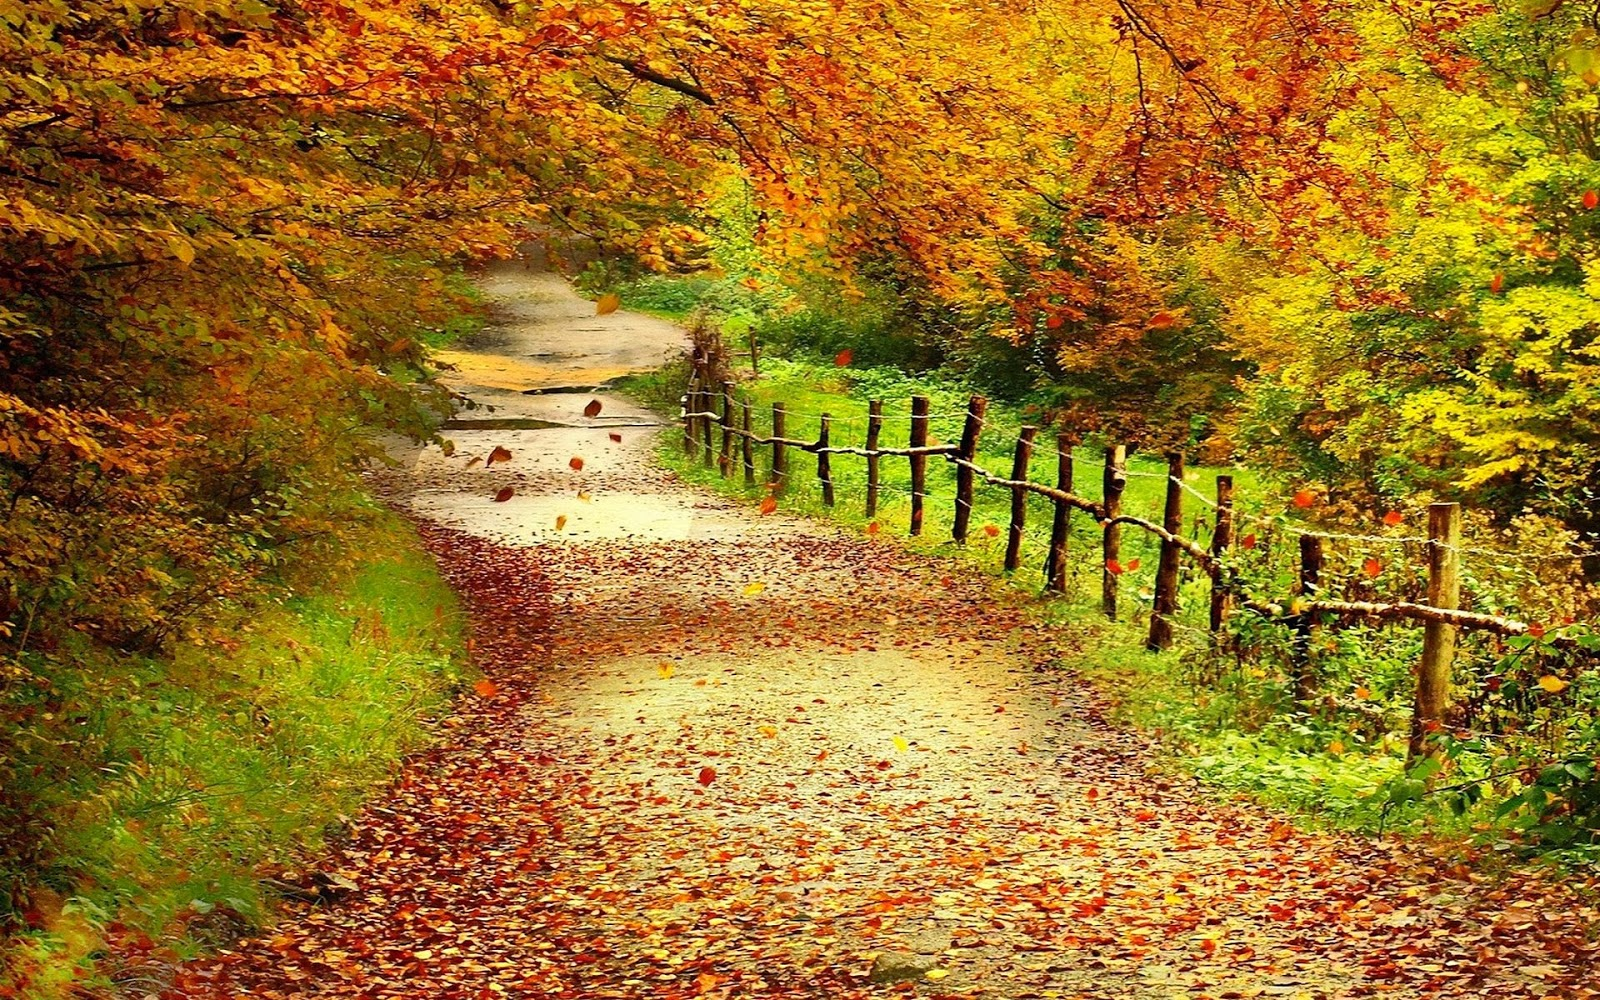 Autumn Yellow Trees wallpaper  nature and landscape